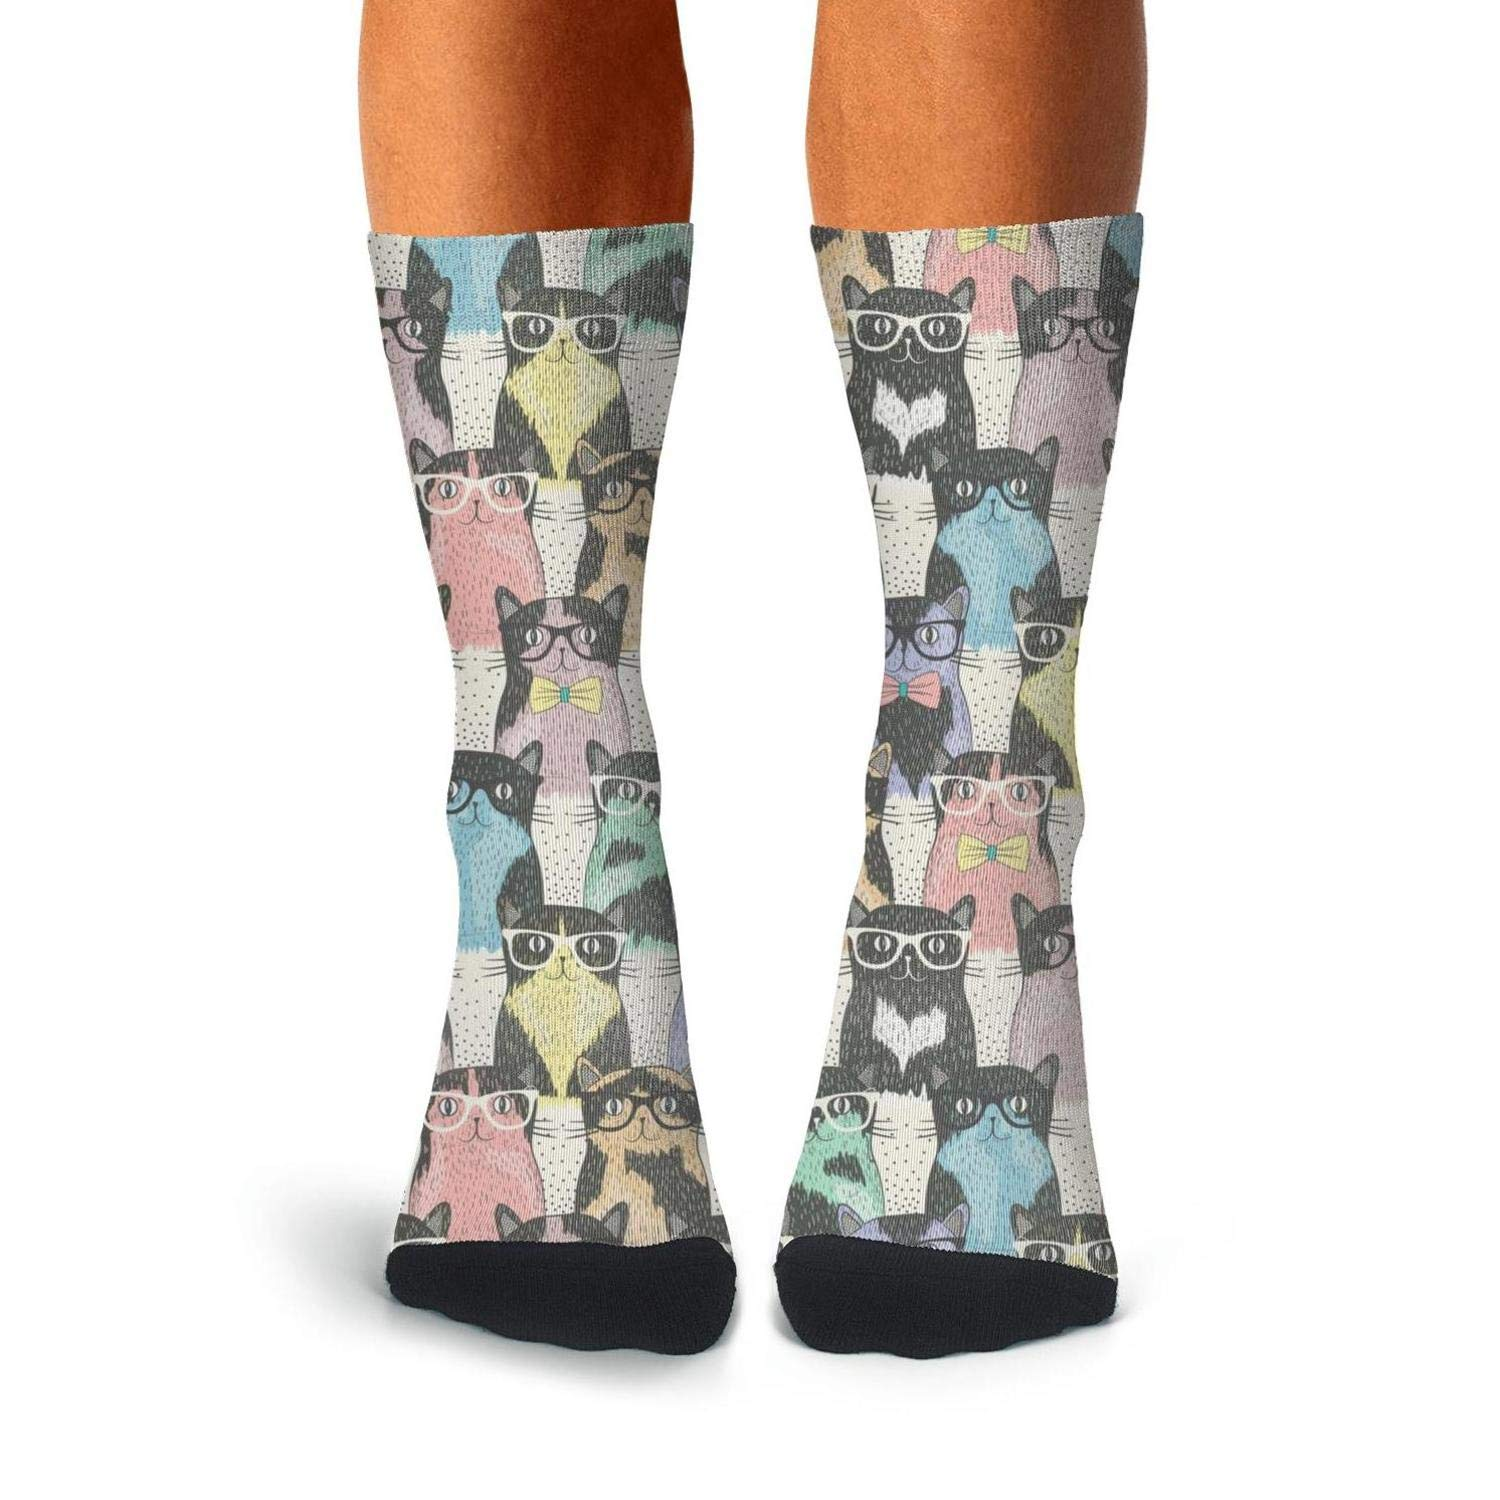 Cute cat meow face Performance Hiking Non-Slid High Ankle Socks for man